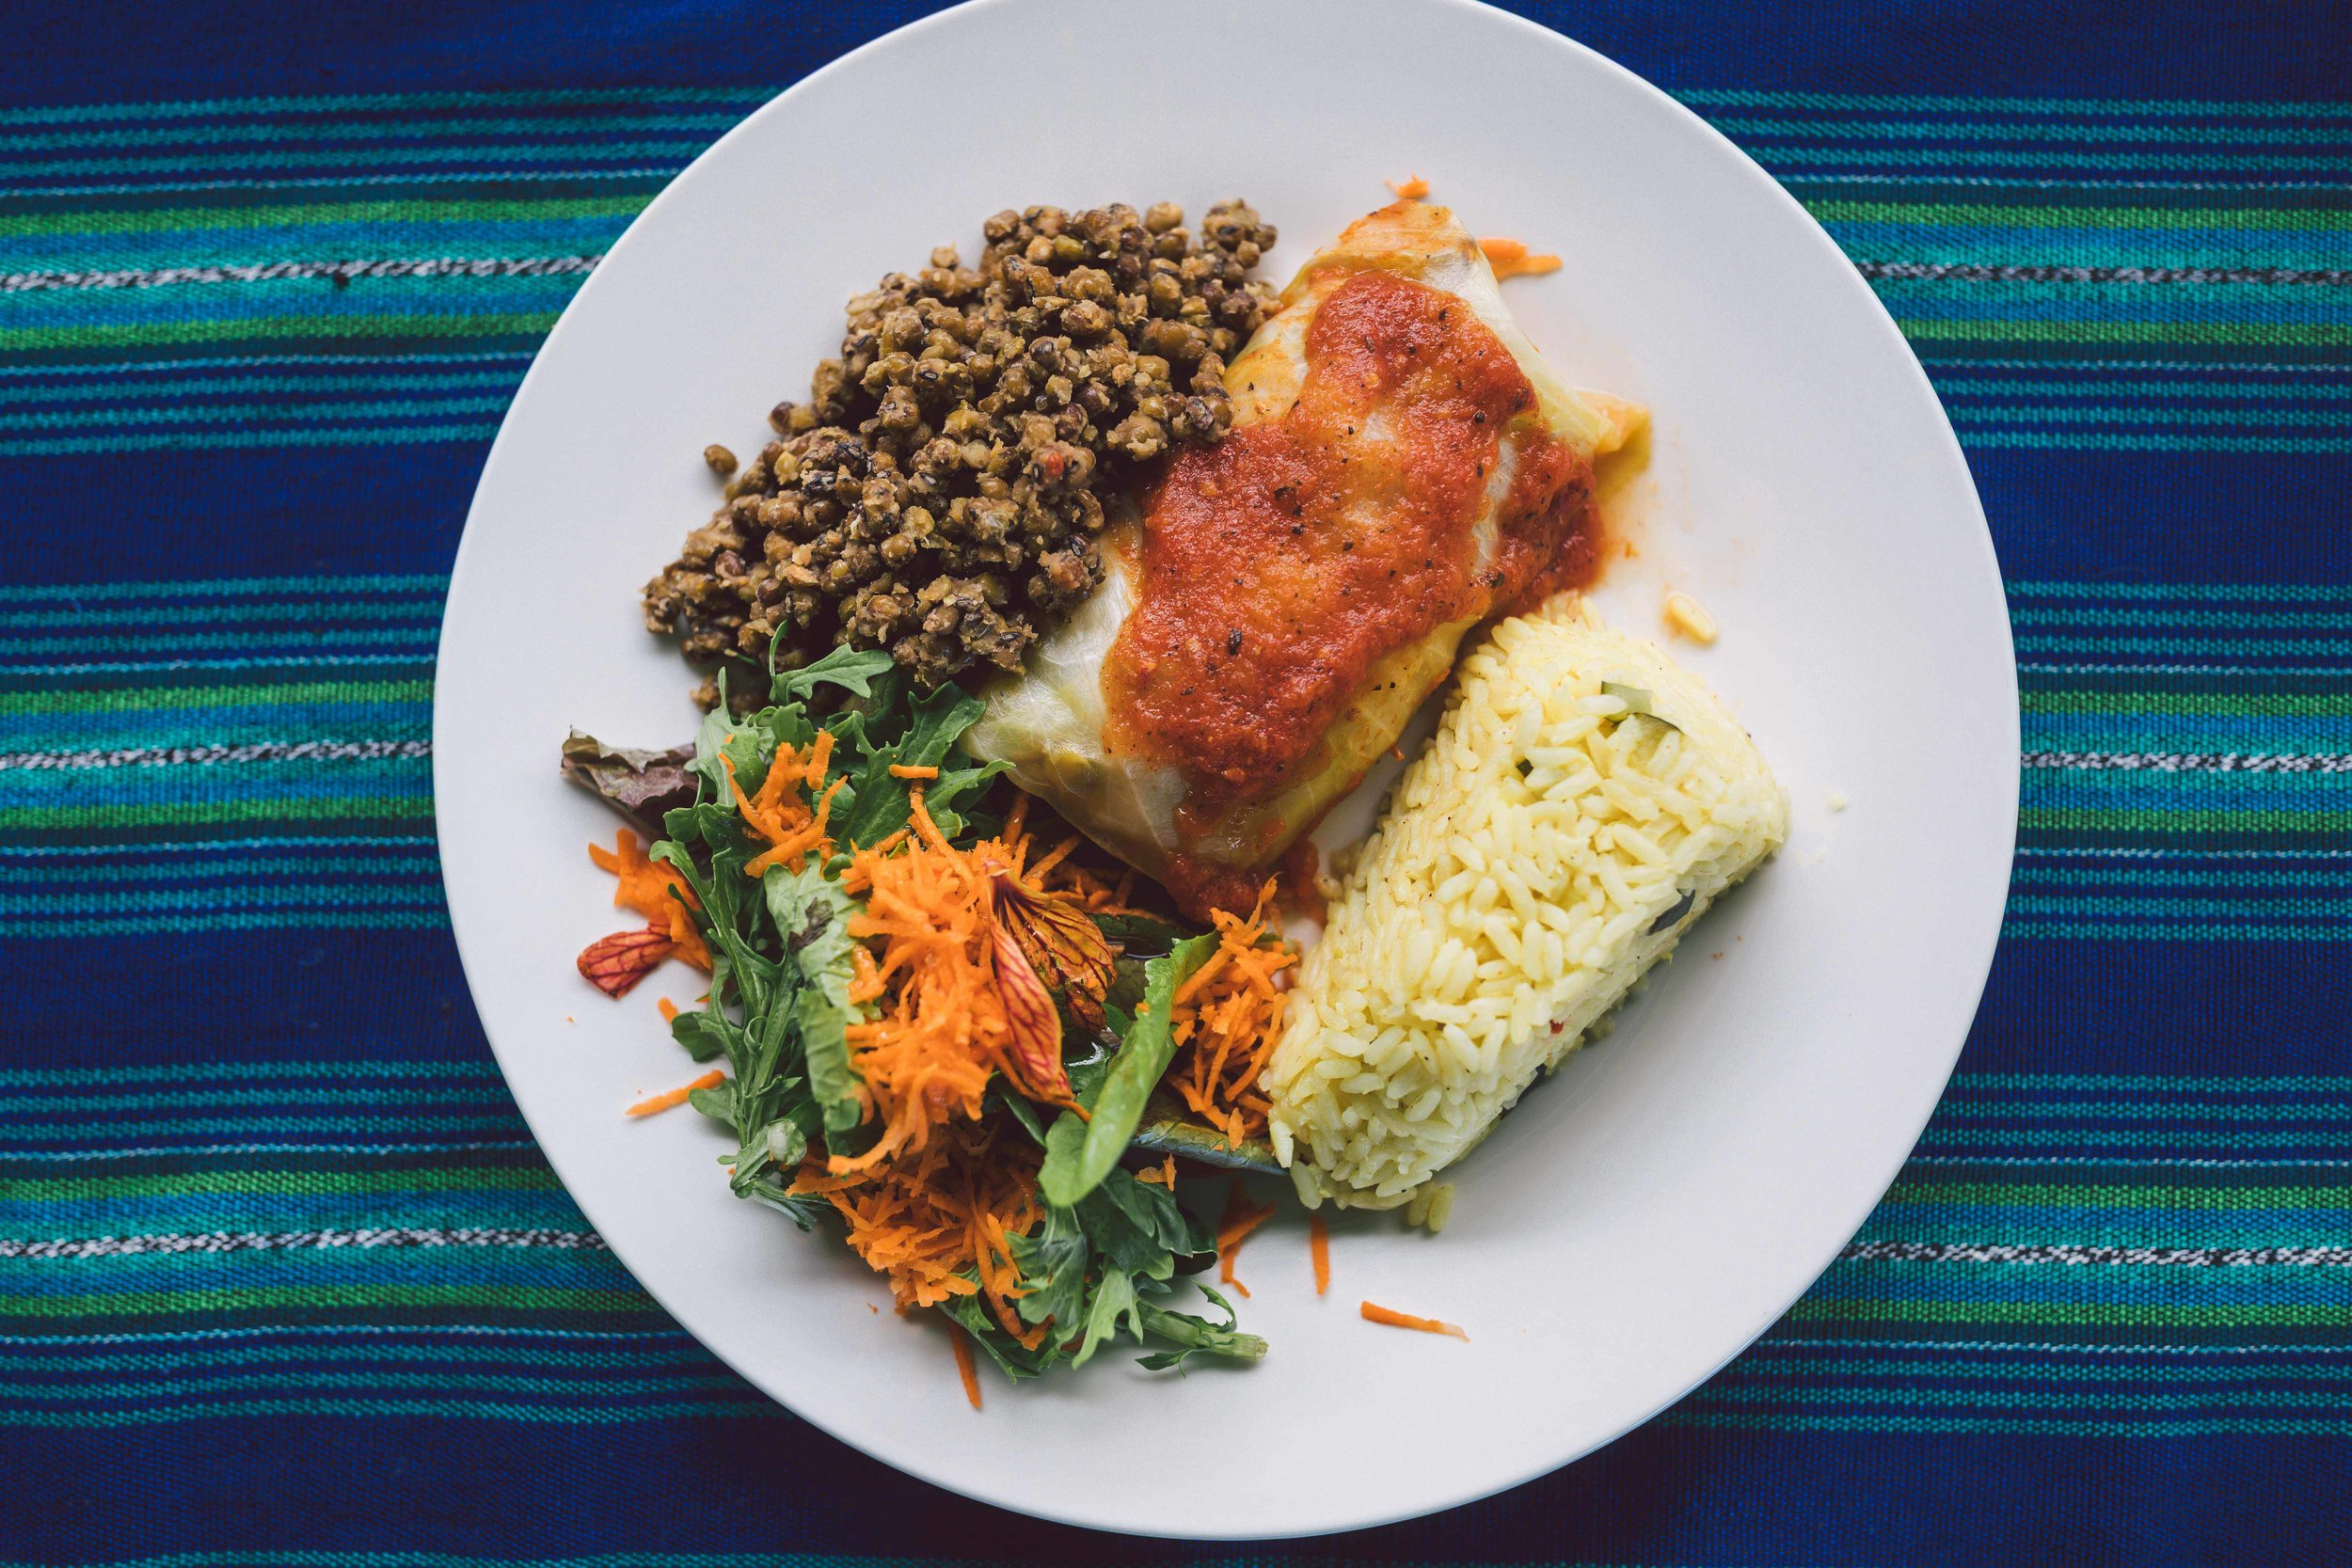 A plate with lentils, green salad, rice, and a burrito covered in tomato sauce. Fresh, healthy food served during the Discovering Birth Midwifery Retreat, at the Bambu Guest House, Lake Atitlan, Guatemala, July 14-27, 2019